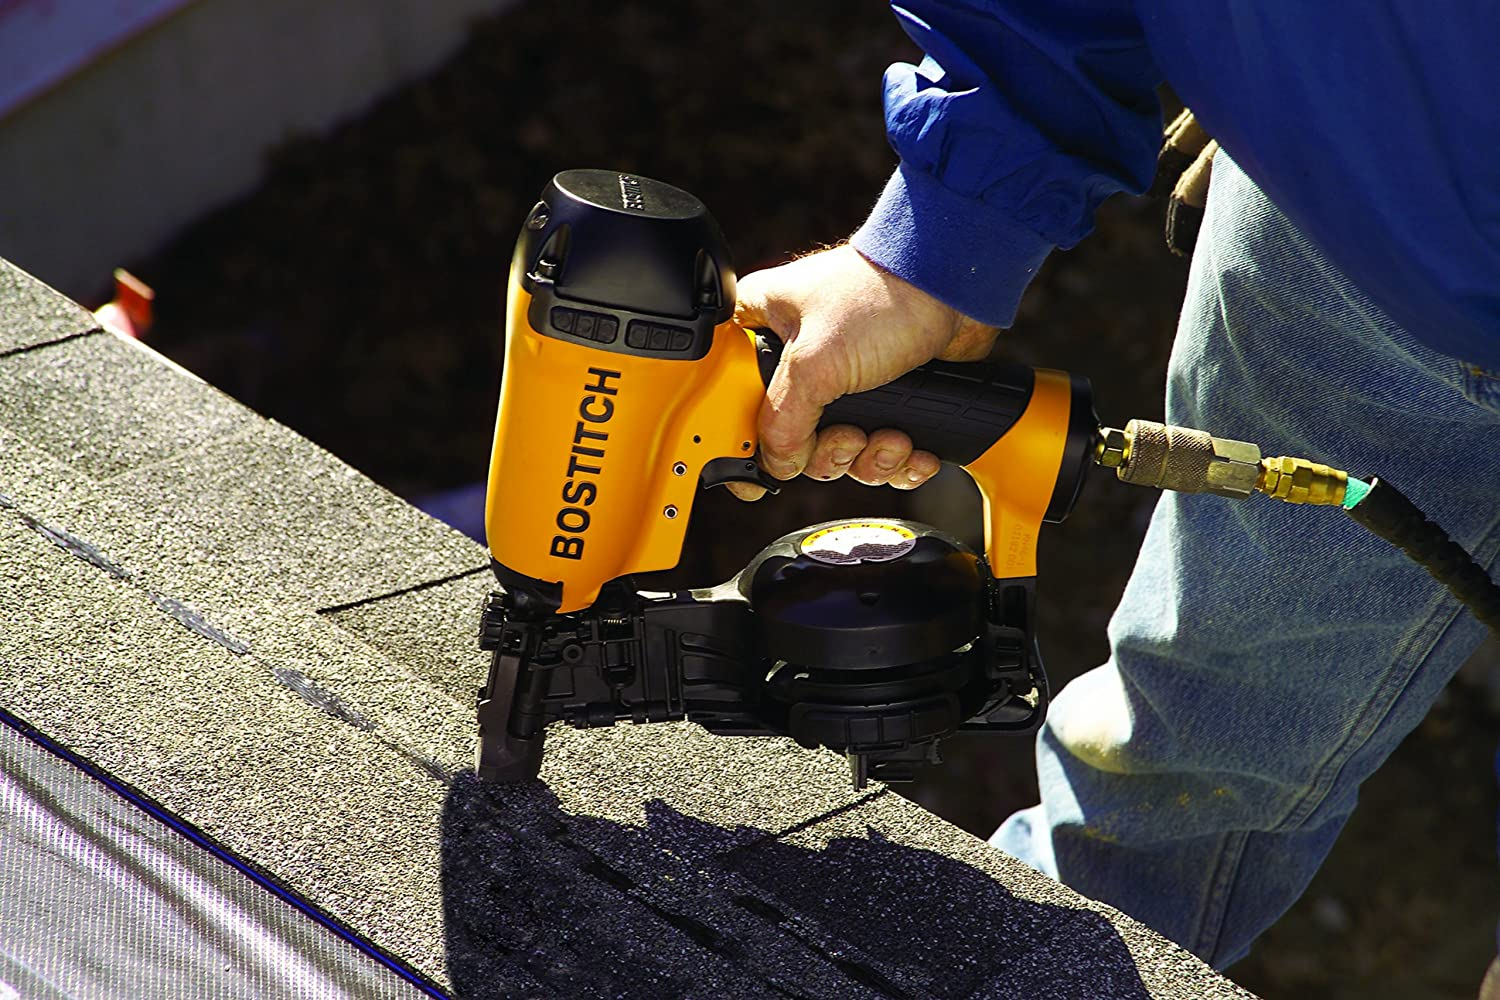 4<strong>. BOSTITCH RN46-1 Roofing Nail Gun - Best Roofing Nailer</strong>